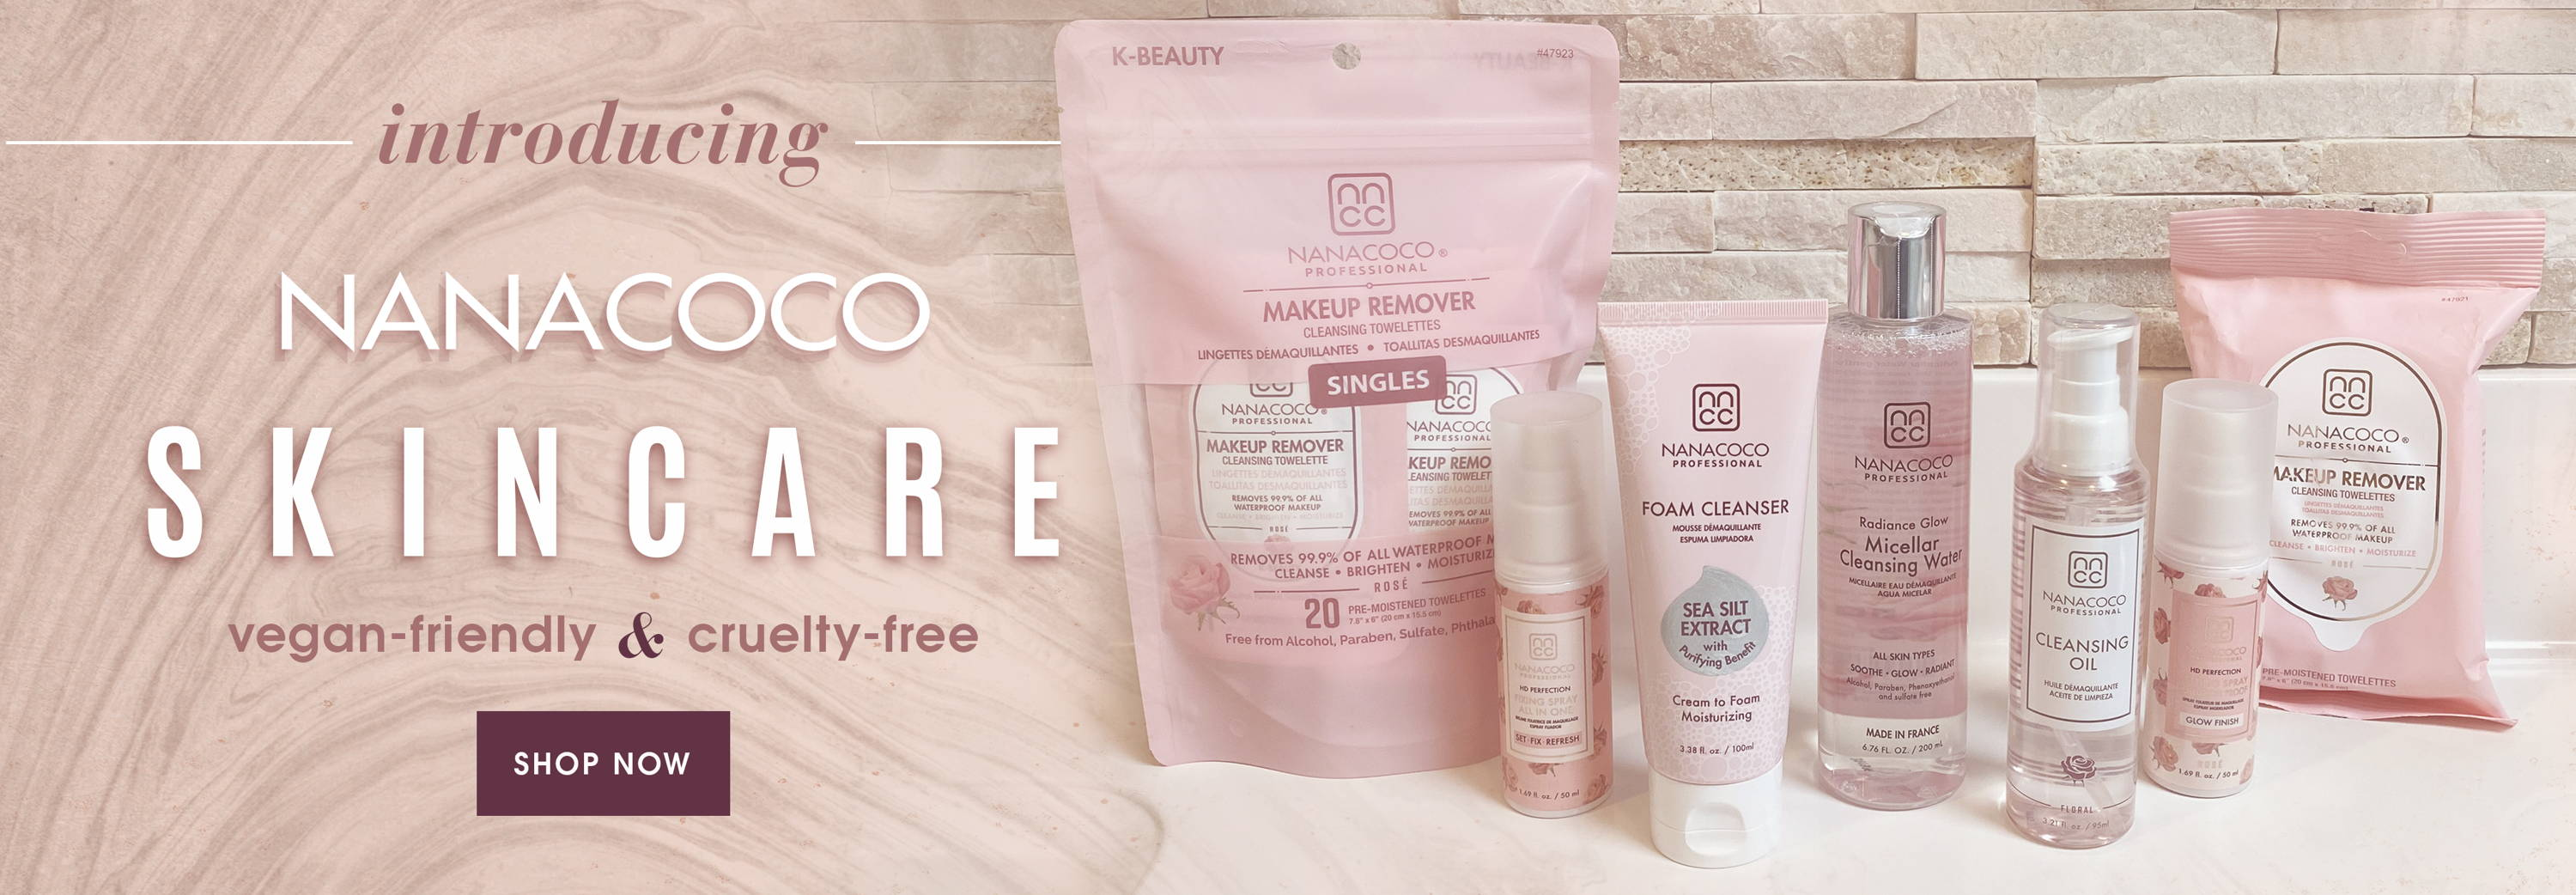 Nanacoco Professional New Arrival- Vegan and Cruelty Free Skincare